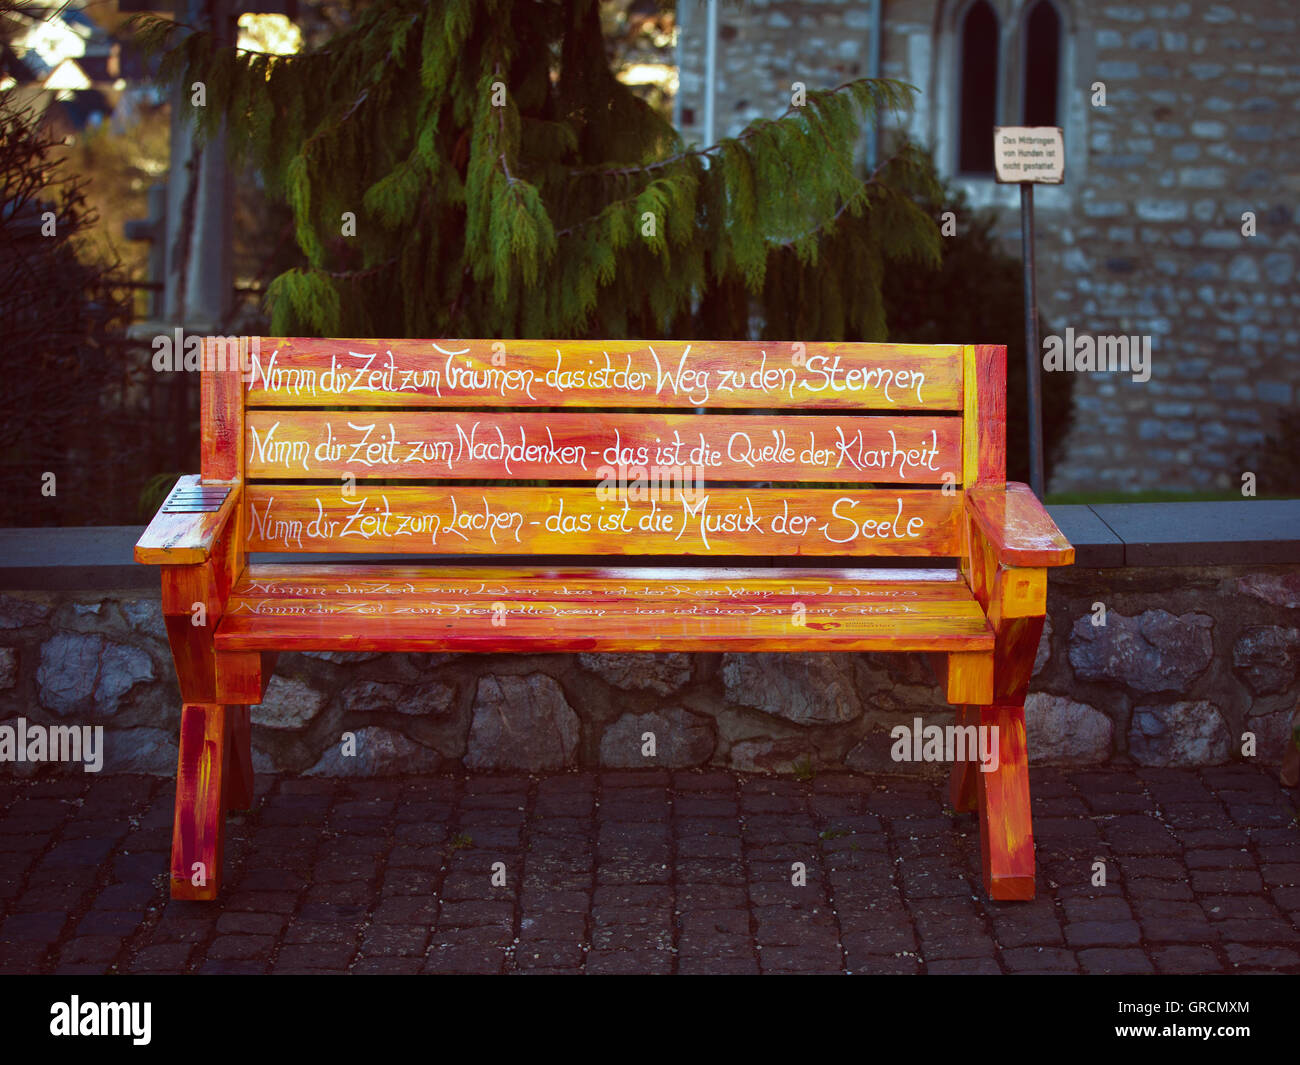 Wisdom Labeled Park Bench - Stock Image